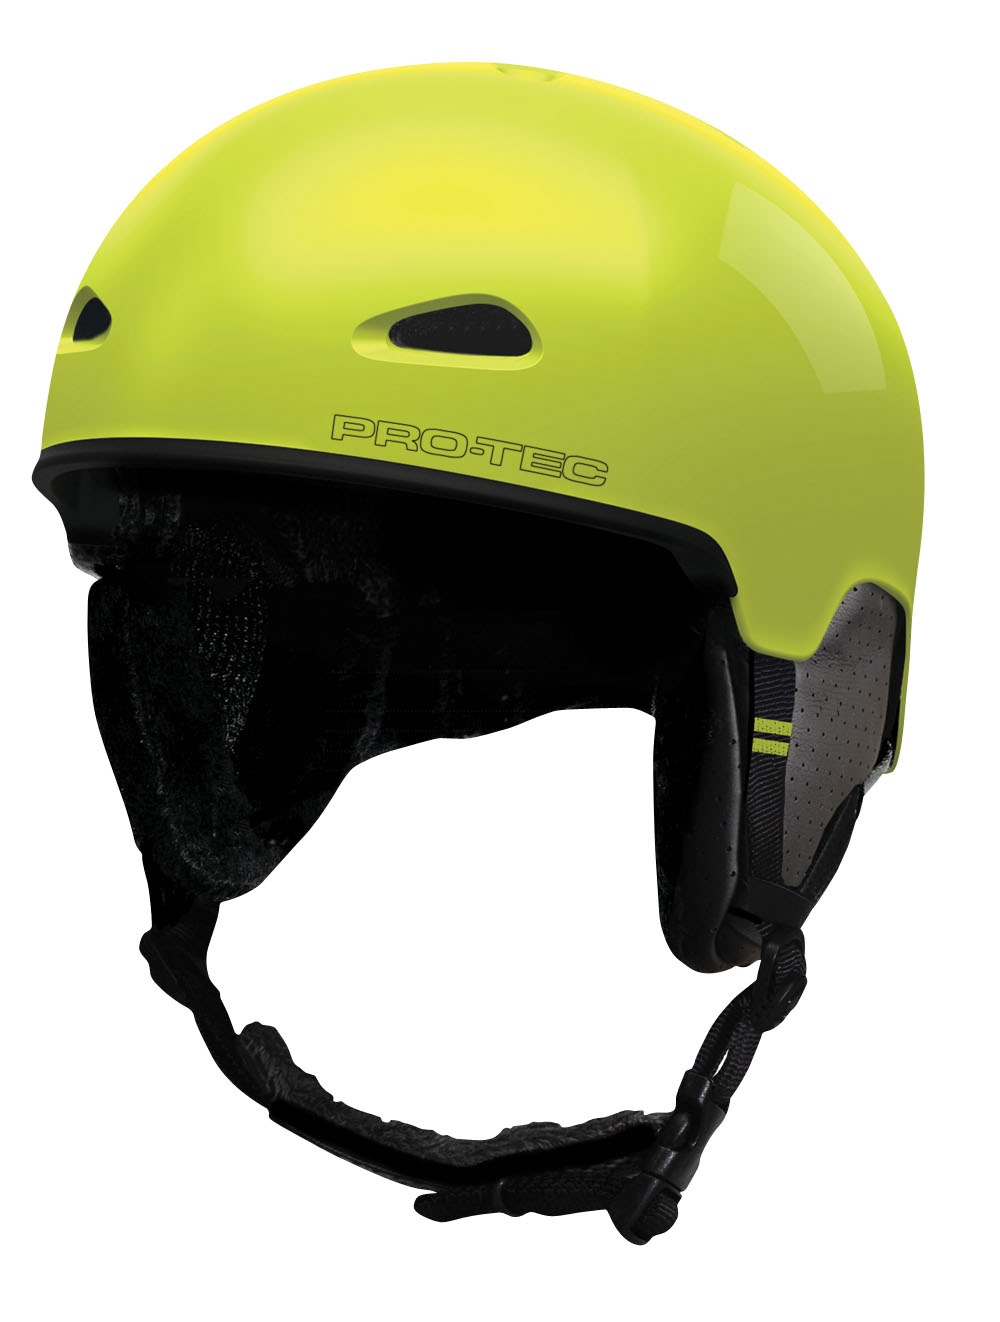 Pro-Tec Commander helmet with the Boa Closure System.